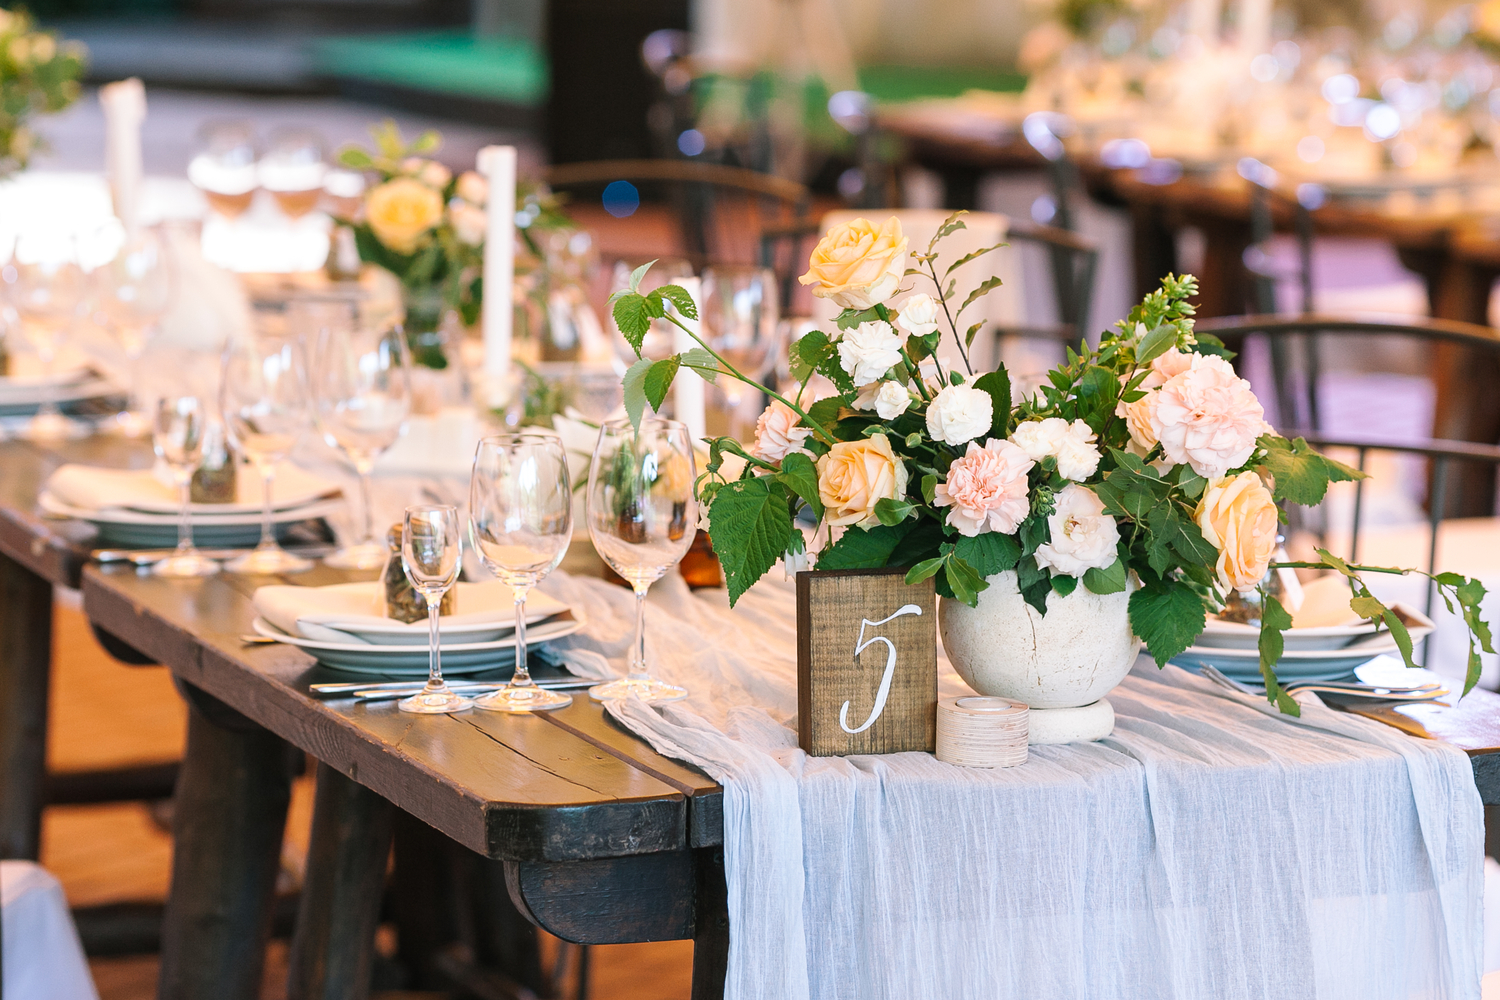 How to Start a Wedding Venue in 6 Easy Steps